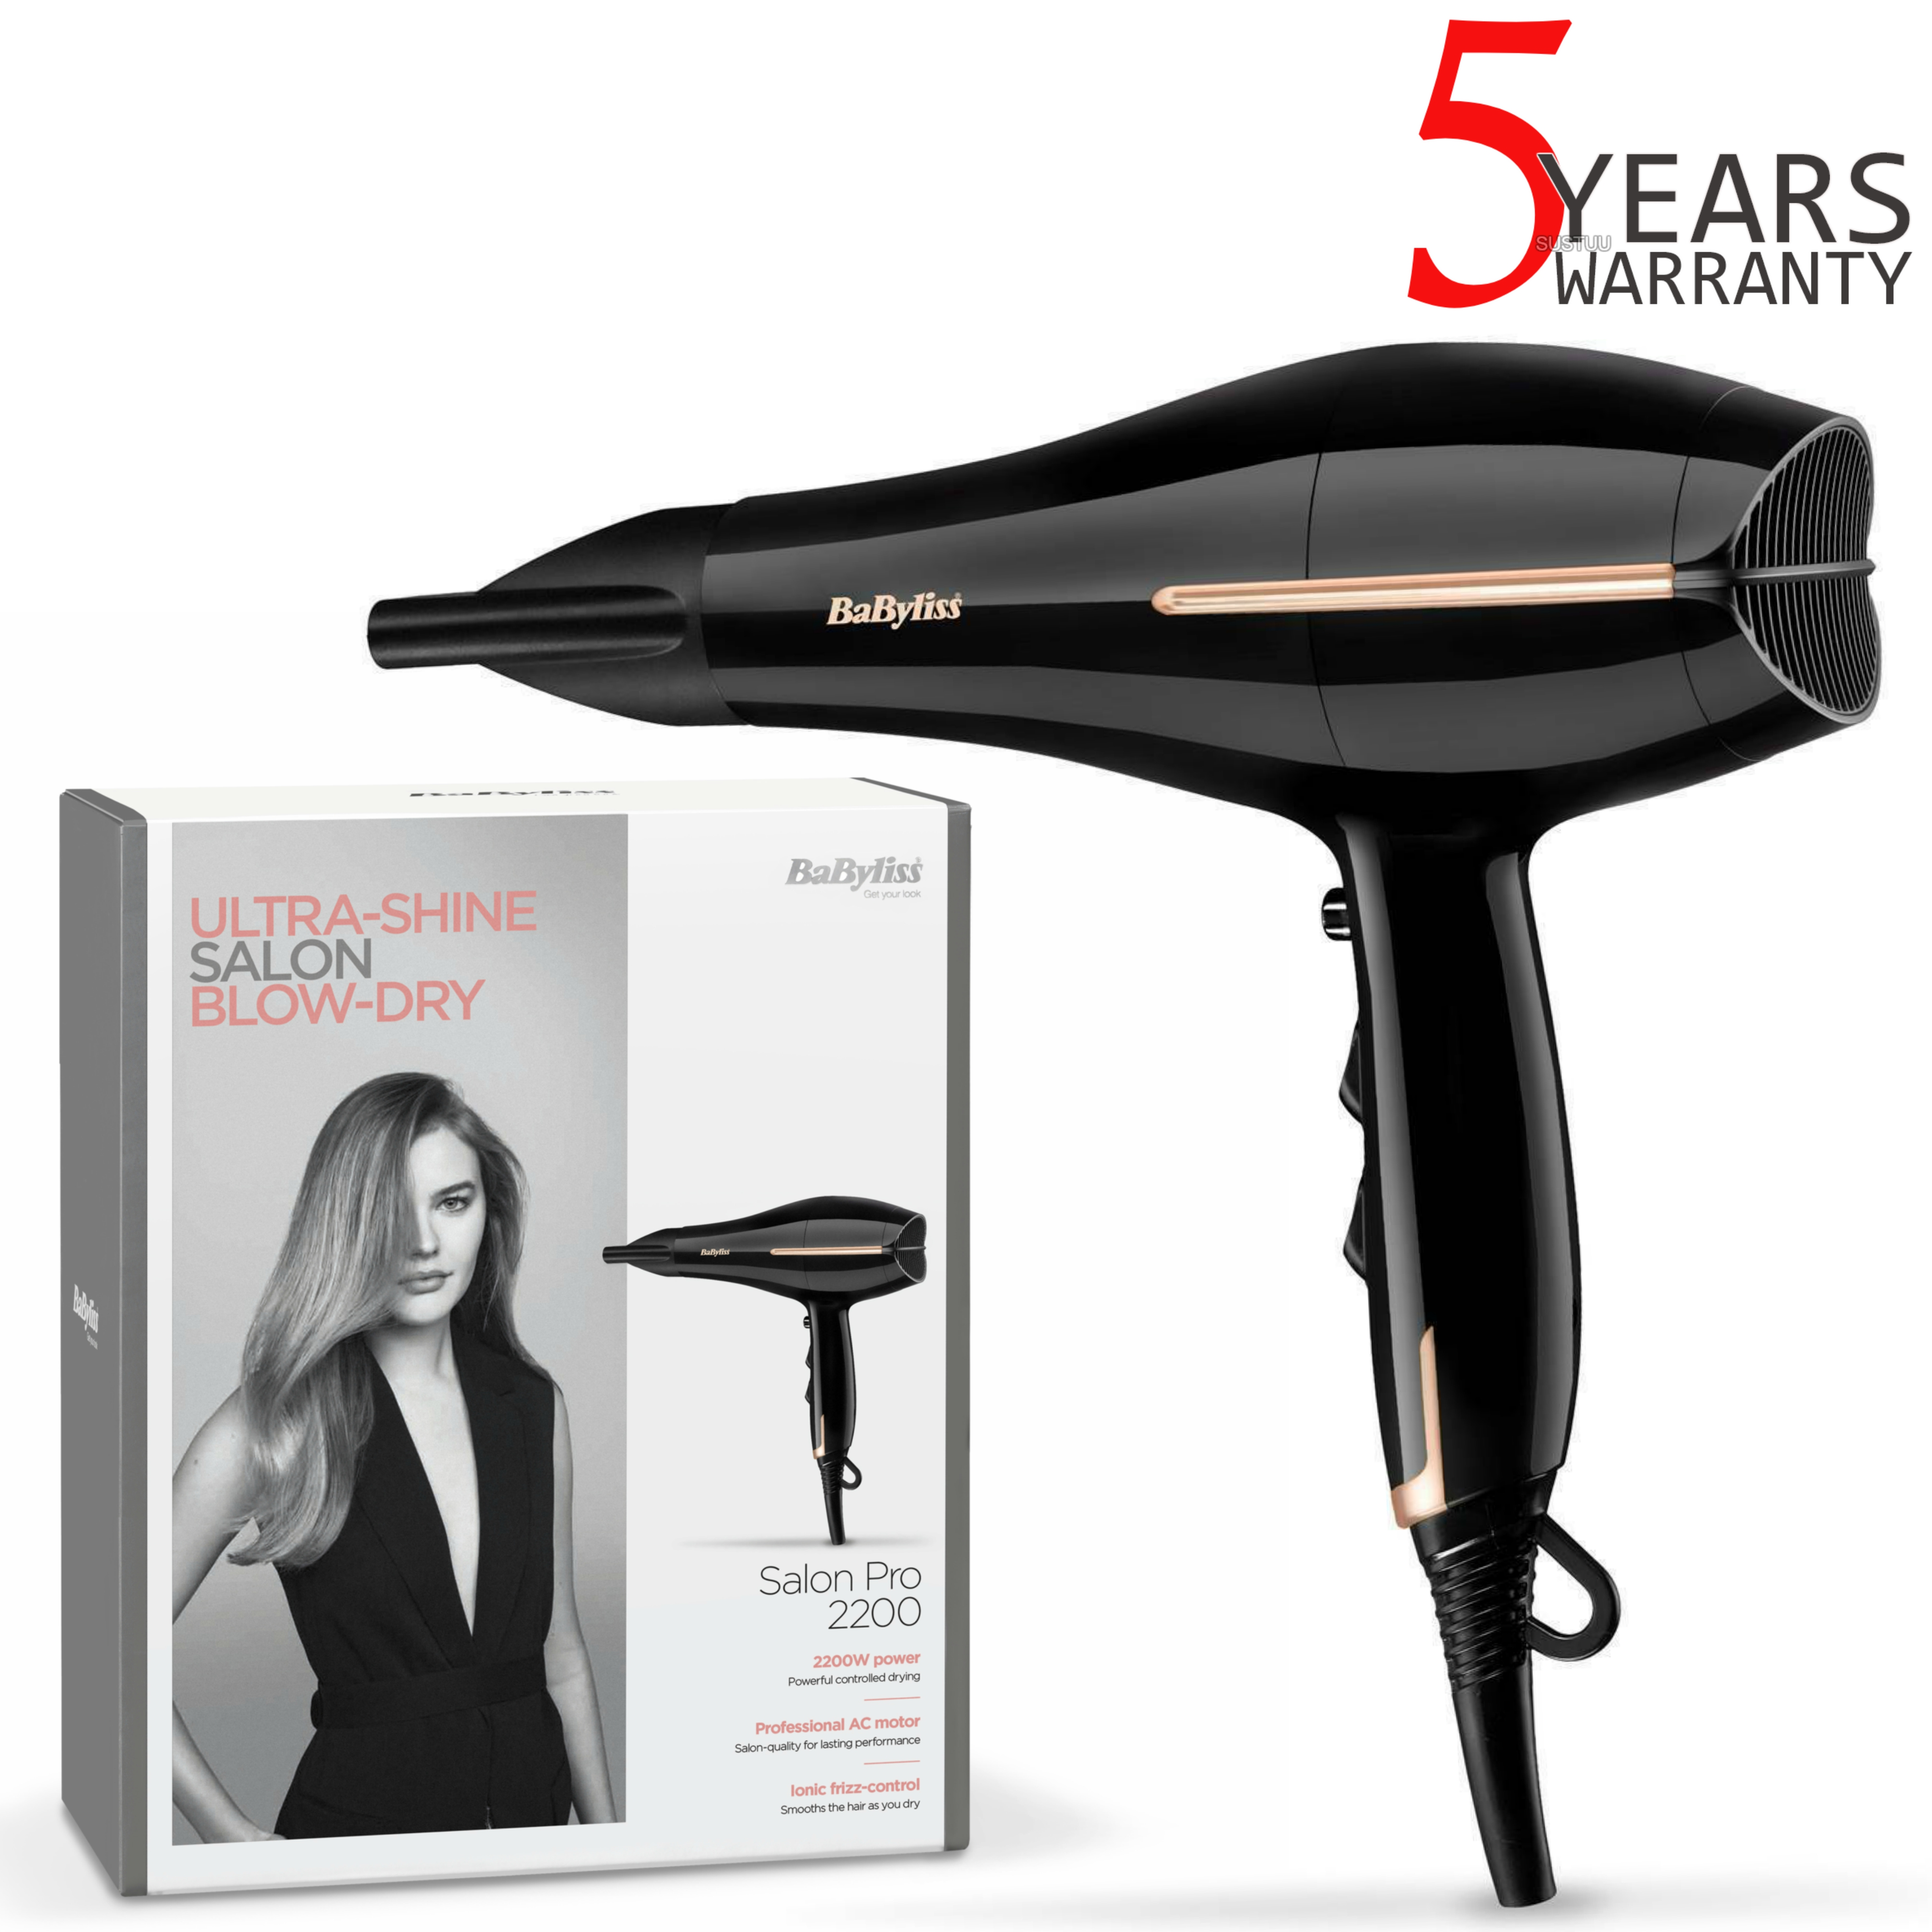 BaByliss 5552U Salon Pro Ionic Hair Dryer | 2200W | 2 Speeds & 3 Heat Settings | Black